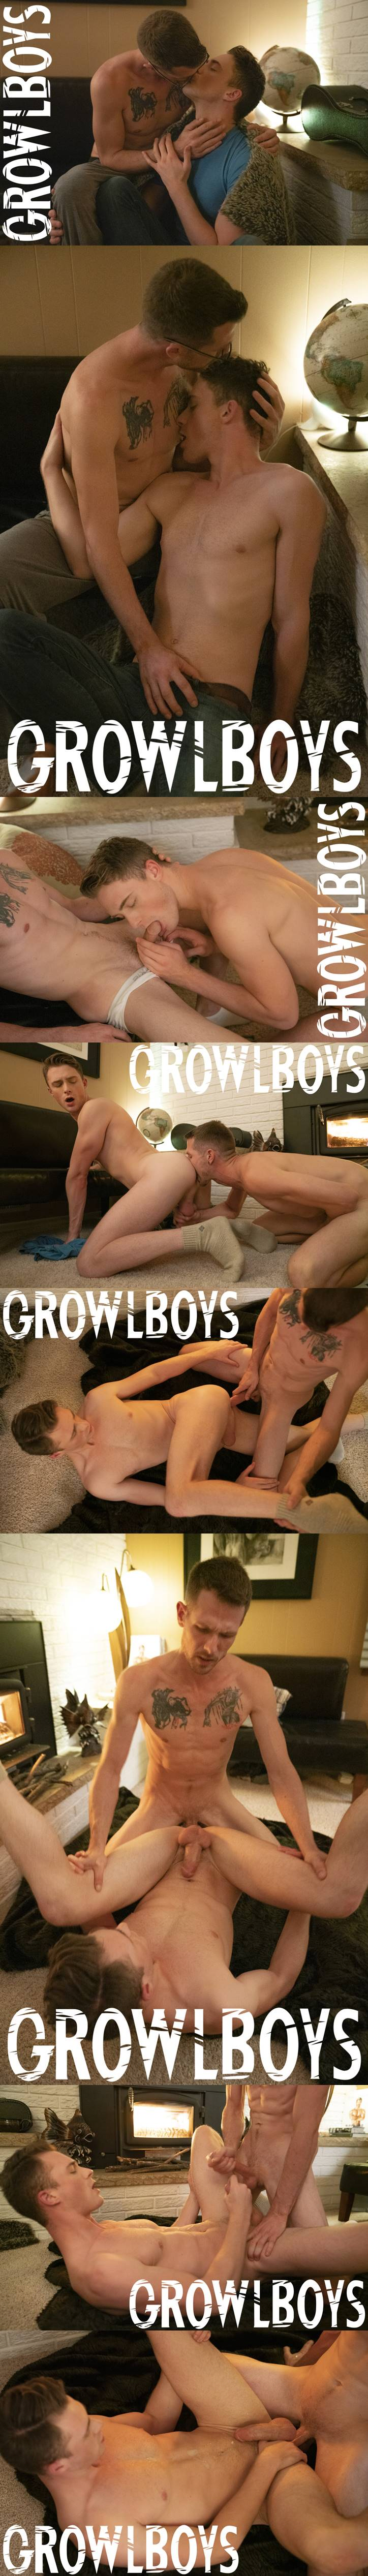 Growl Boys: The Monster 2 - Cole Blue & Tim Armstrong